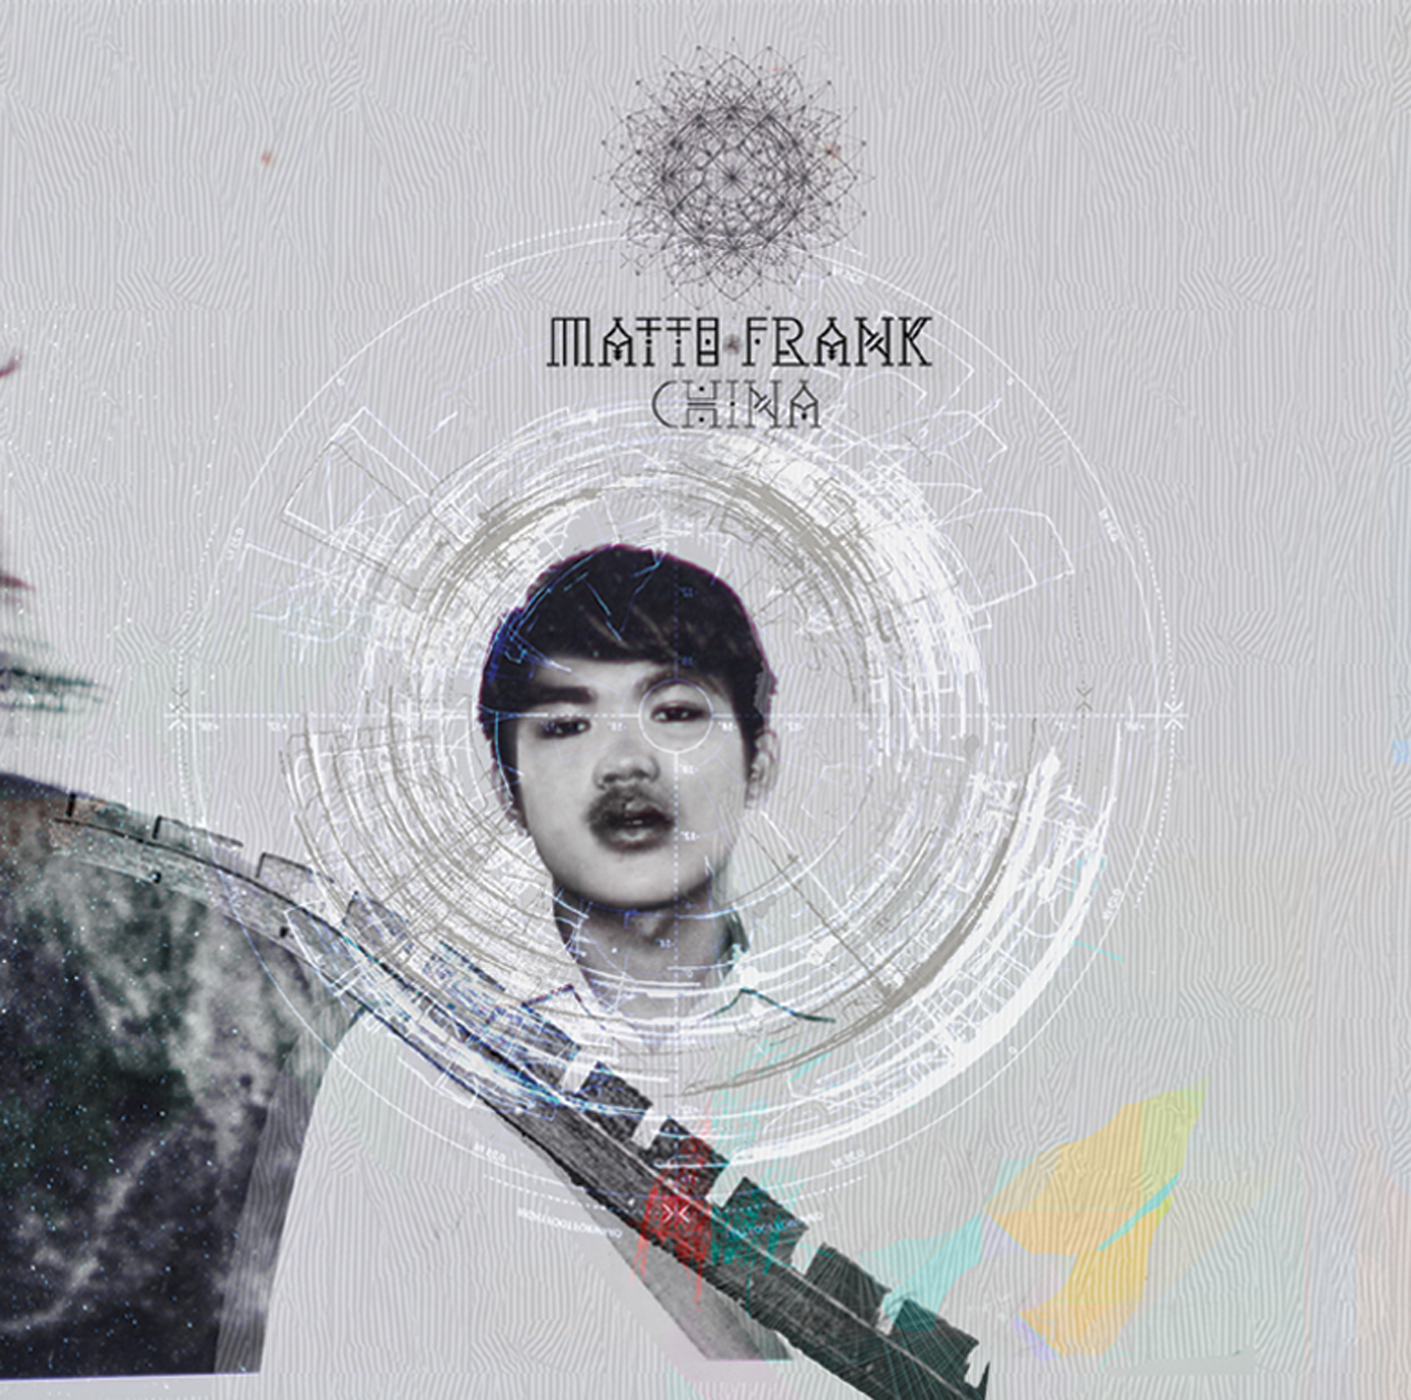 NM056: matto frank - china